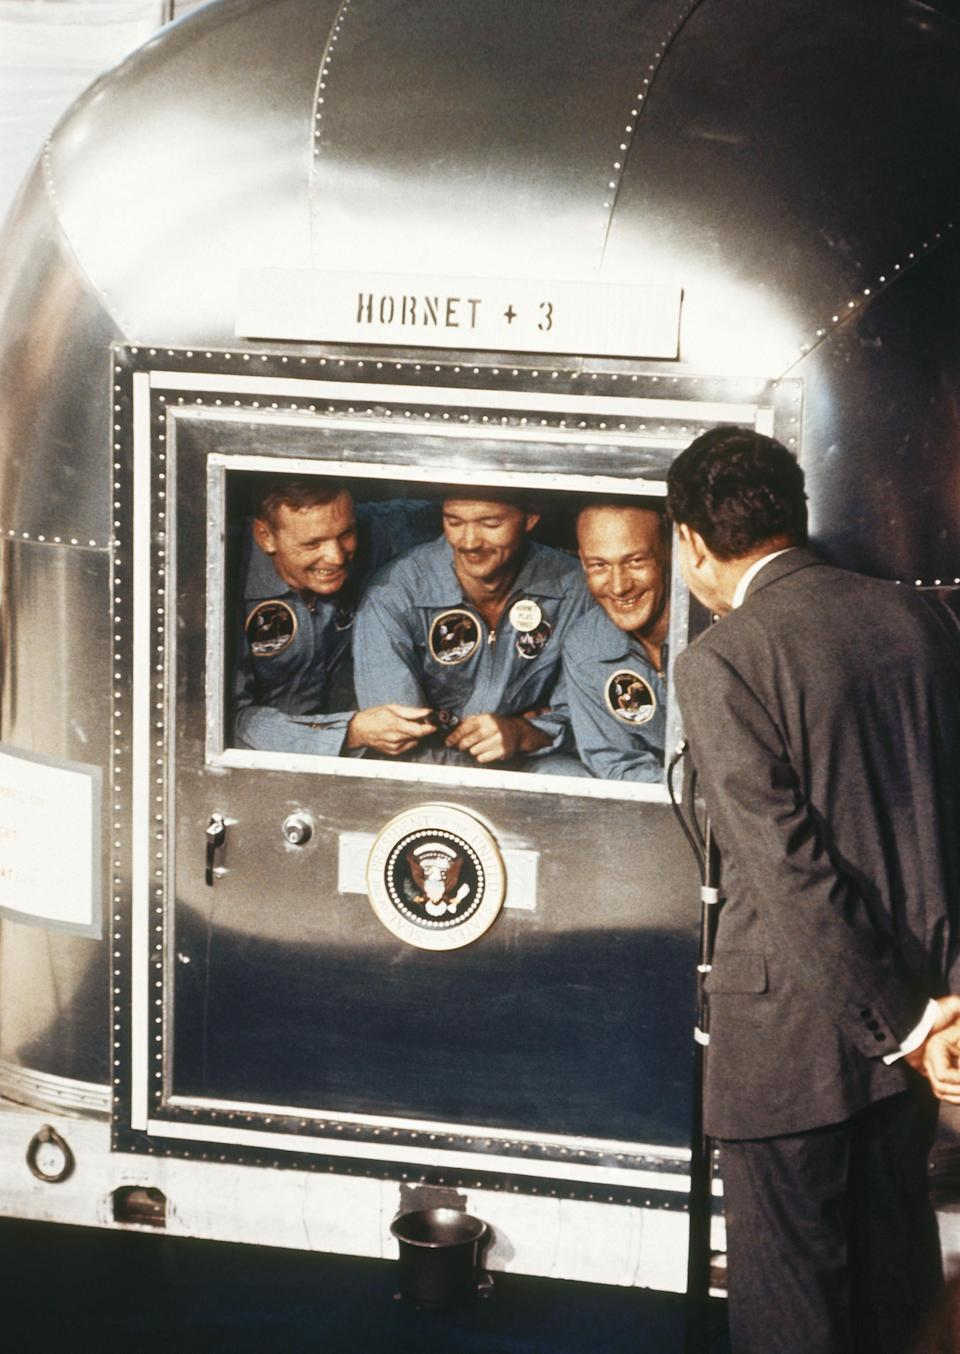 """FILE – In this July 24, 1969 file photo, President Richard Nixon, right, greets the Apollo 11 astronauts in the quarantine van on board the U.S.S. Hornet after splashdown and recovery. The Apollo 11 crew from left are Neil Armstrong, Michael Collins, and Edwin """"Buzz"""" Aldrin. (AP Photo, File)"""